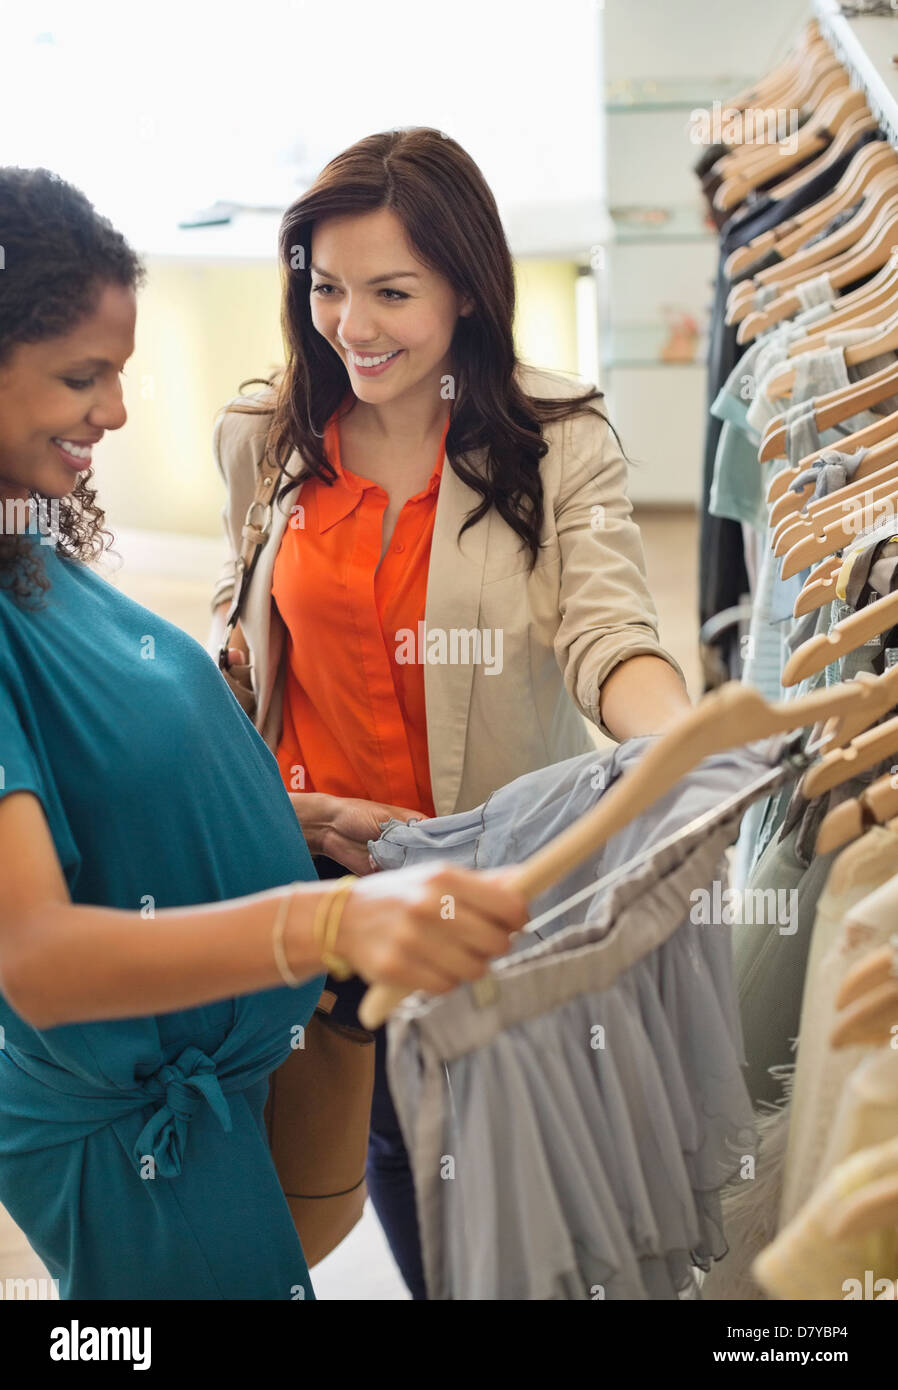 1c543a7cc2 Women shopping together in clothes store Stock Photo: 56535644 - Alamy